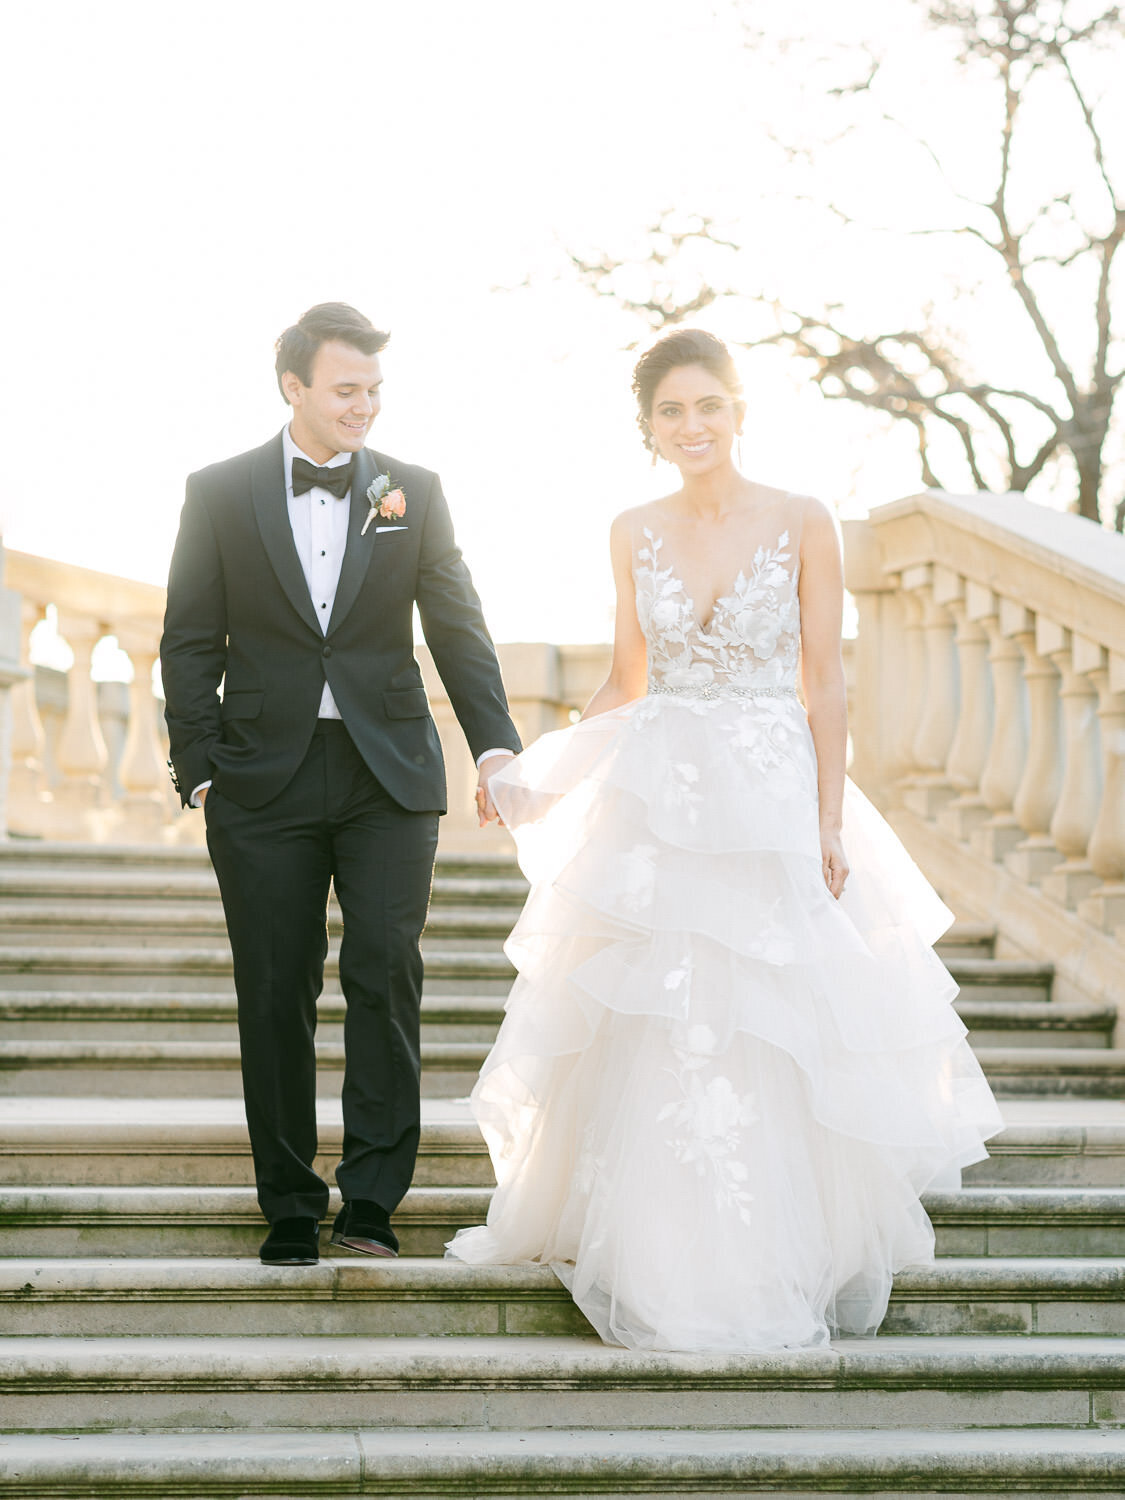 smiling bride and groom walking down concrete stairs at sunset